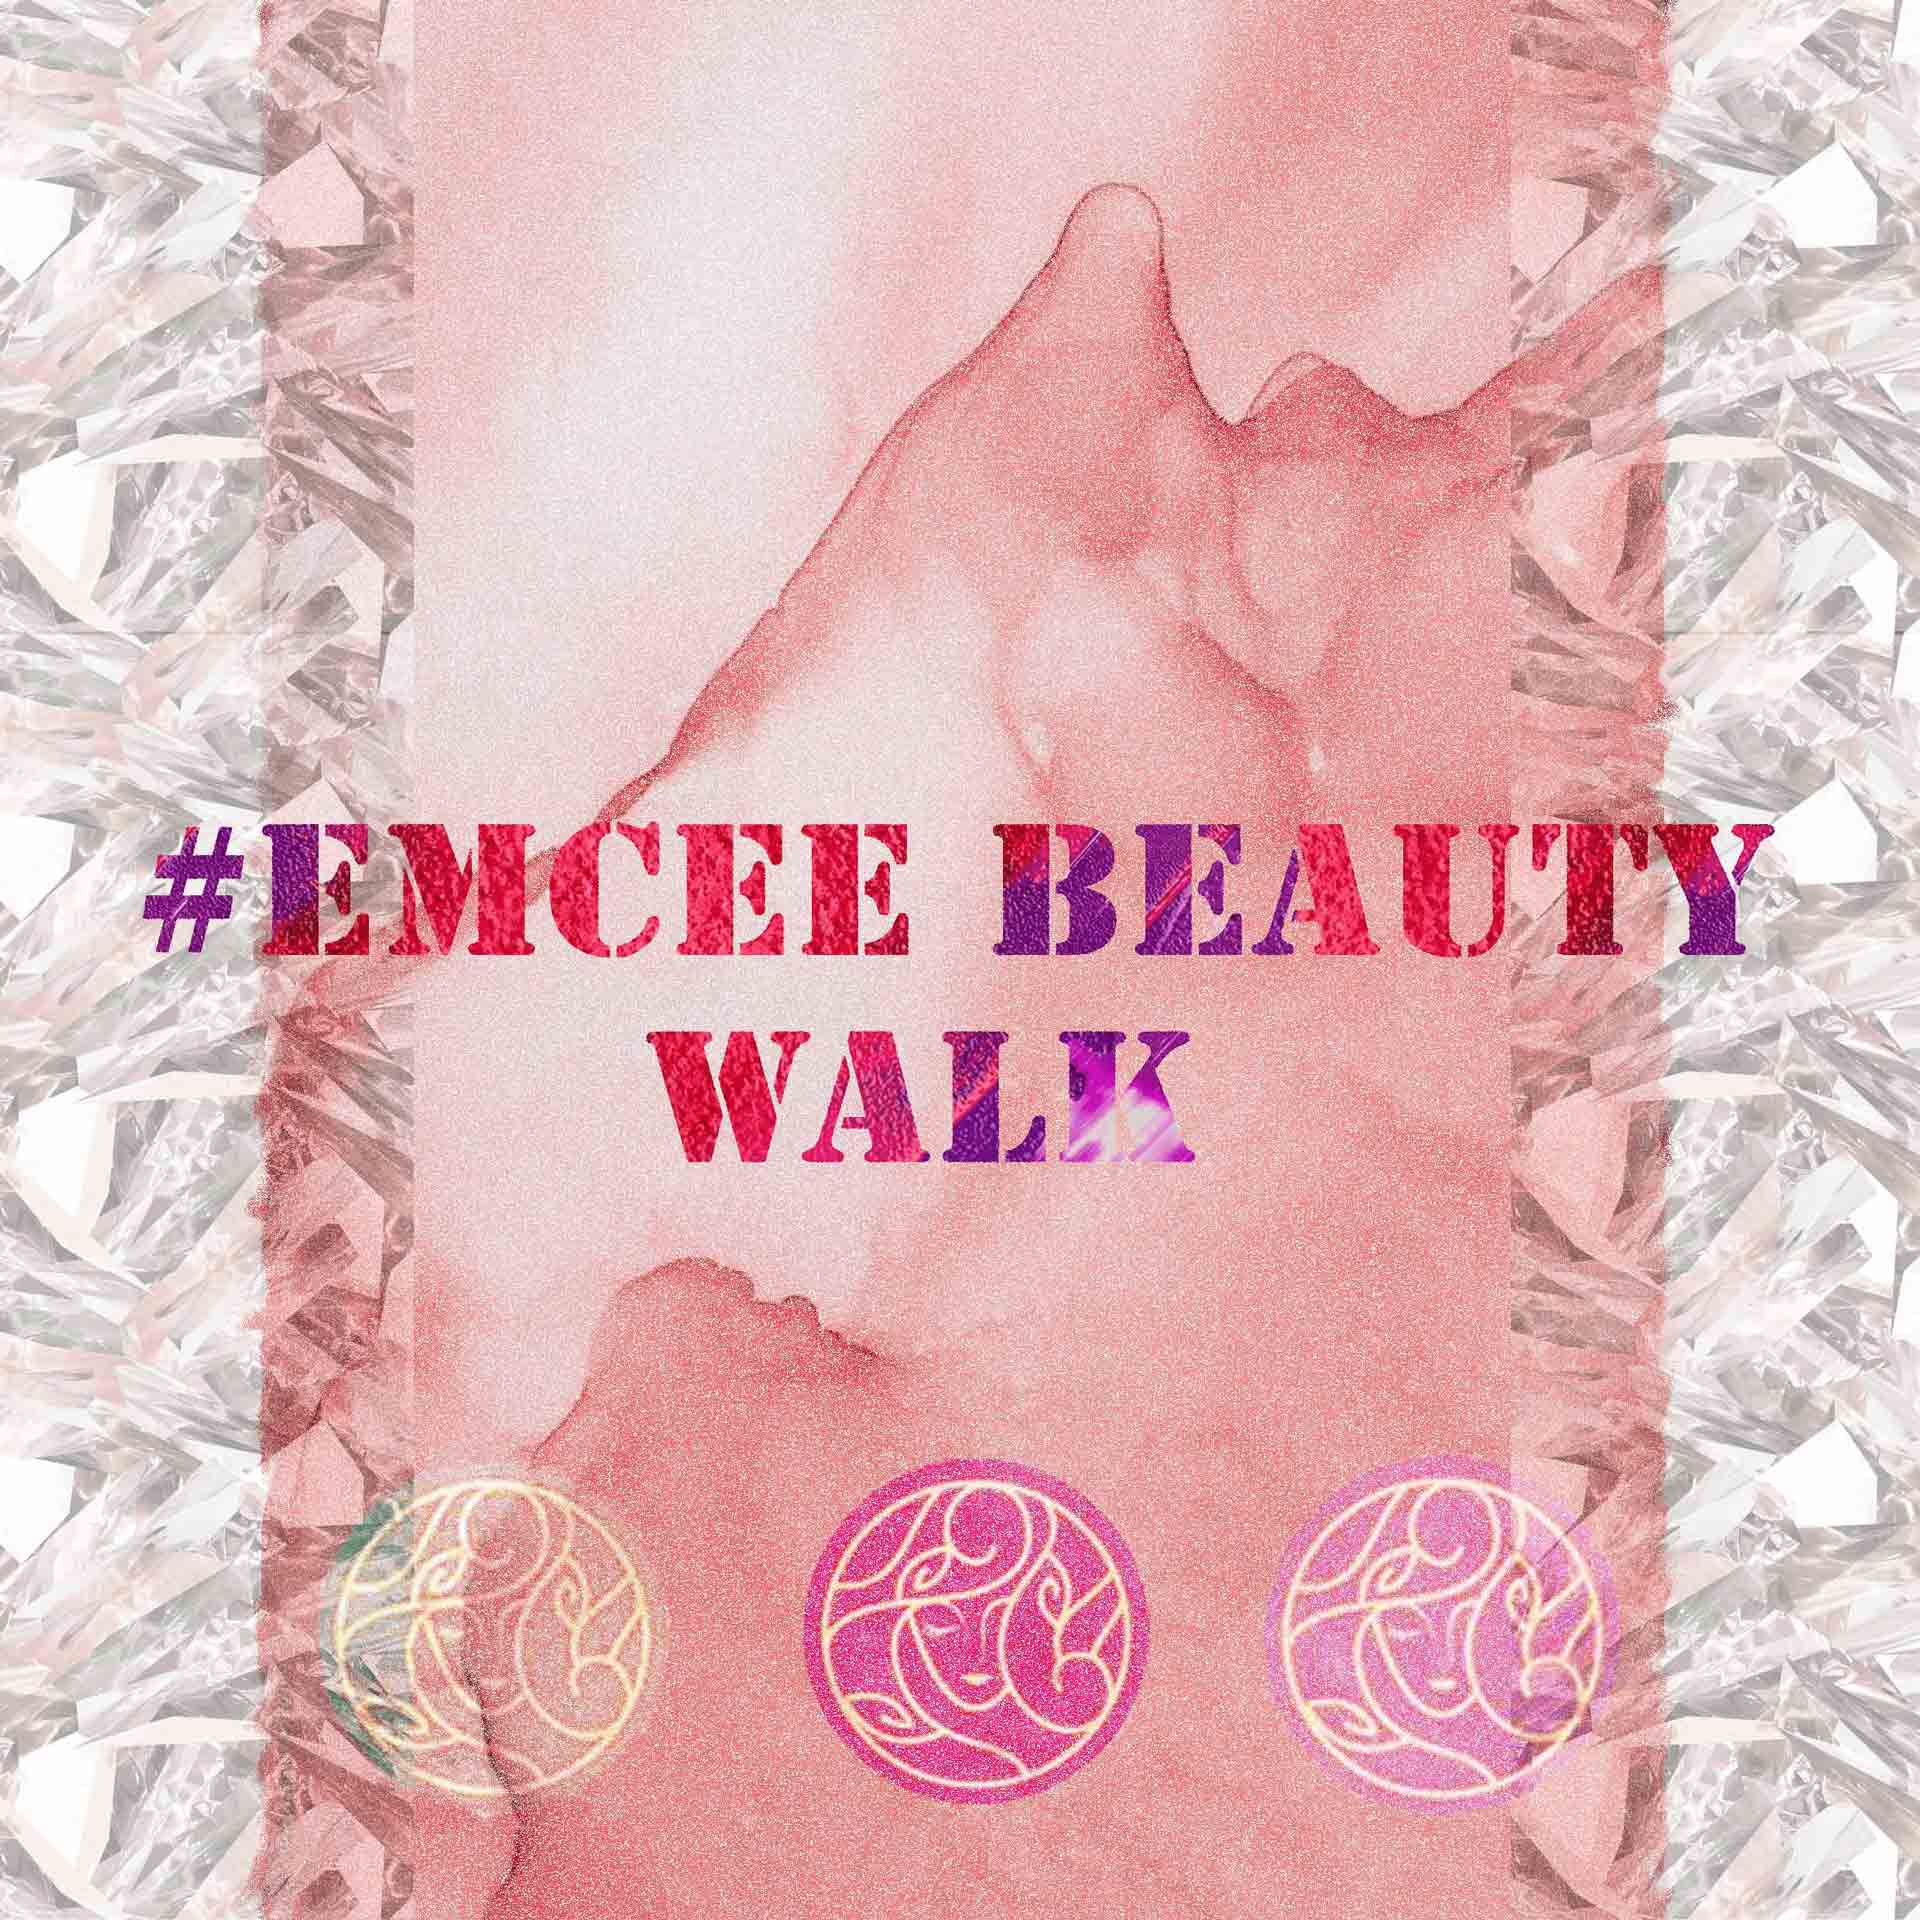 #EMCEE BEAUTY WALK